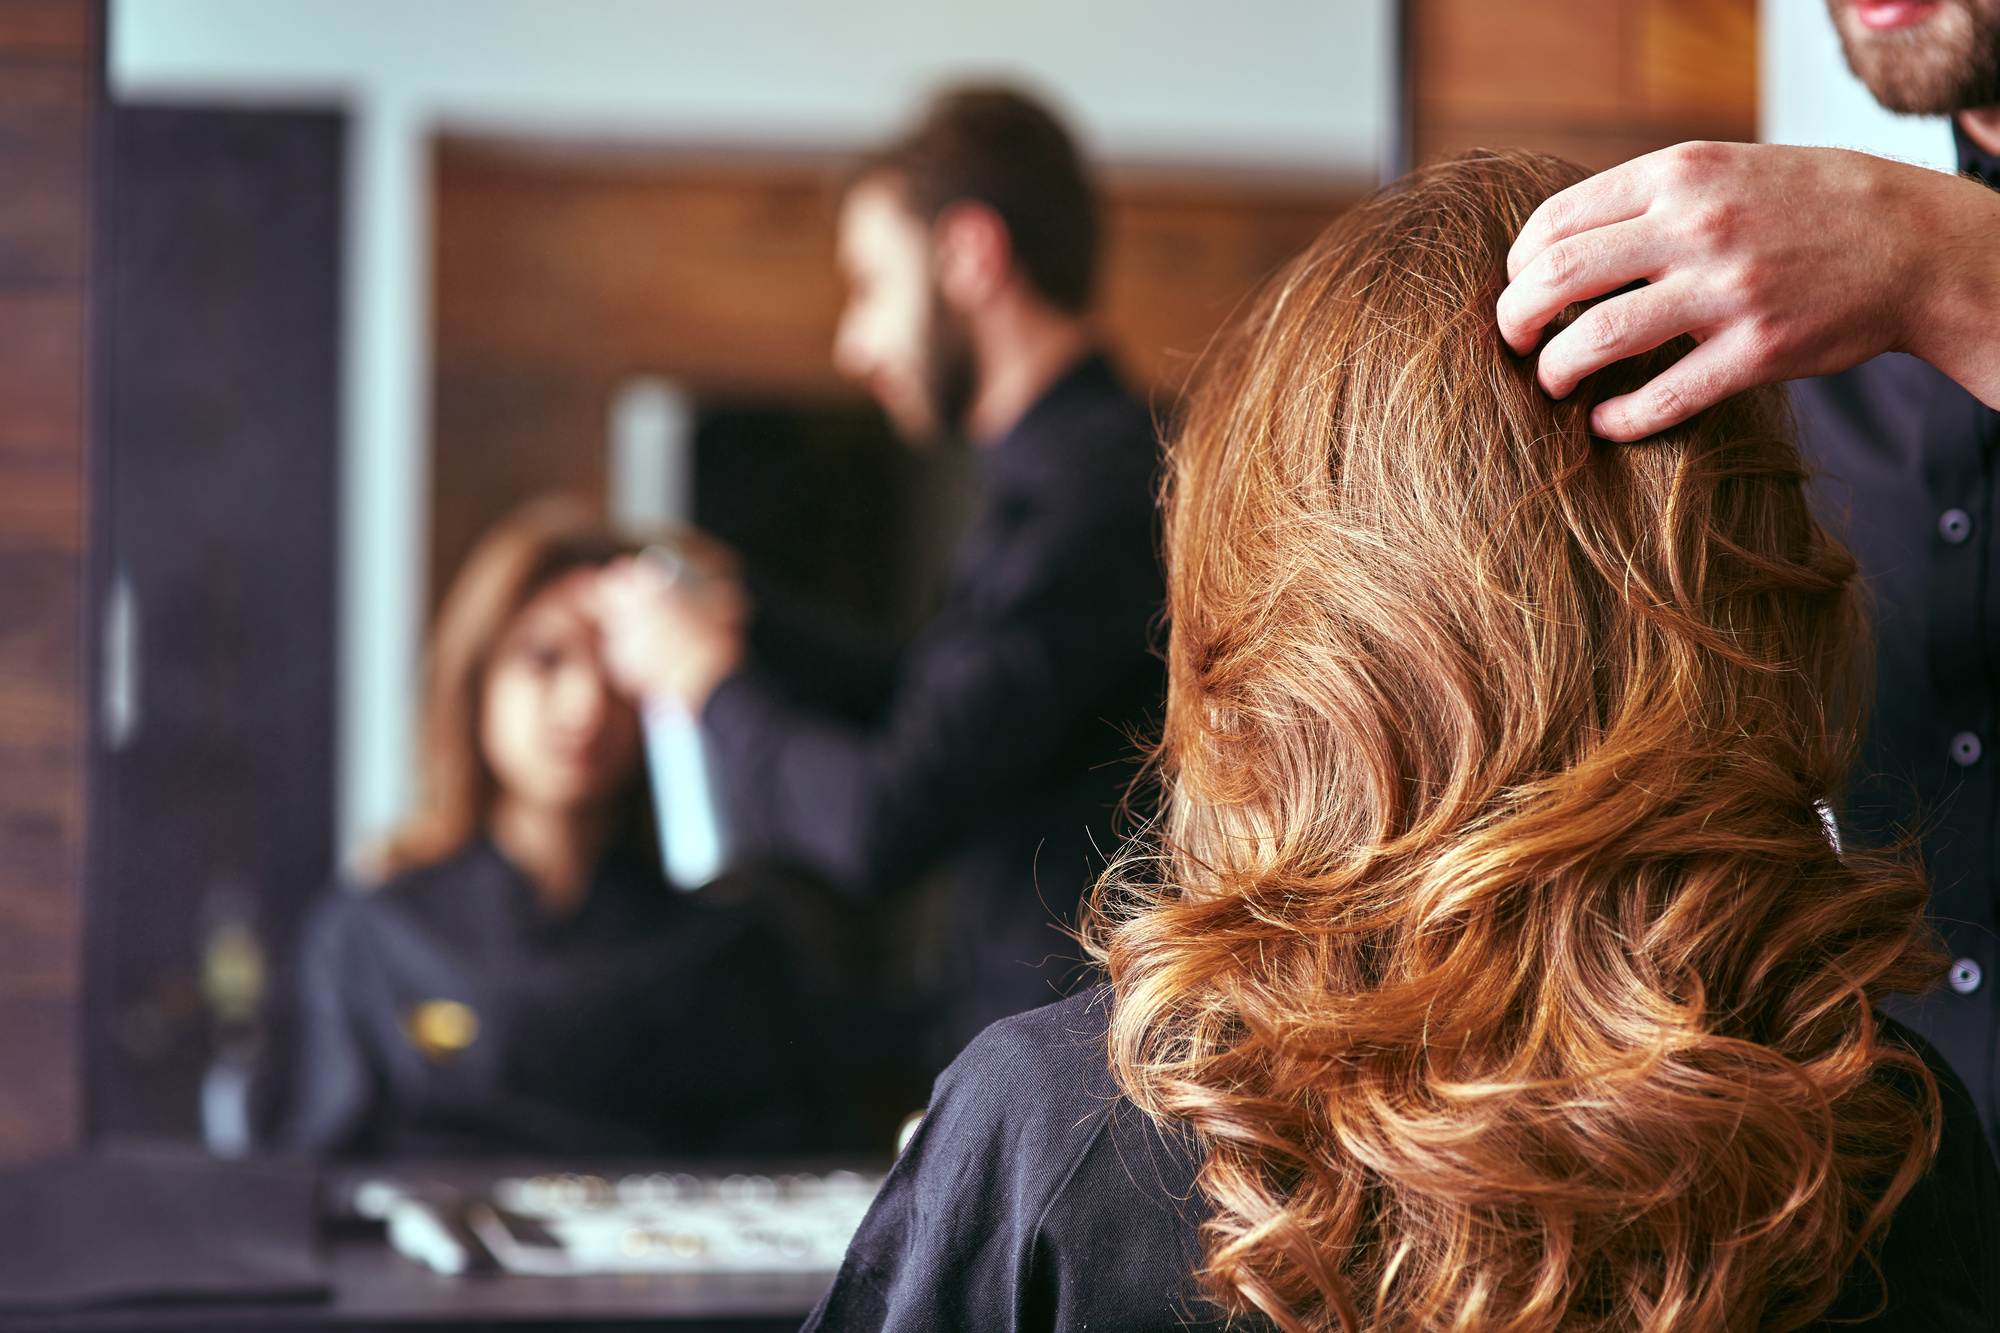 How to Get Thicker Hair: 5 Simple Tips